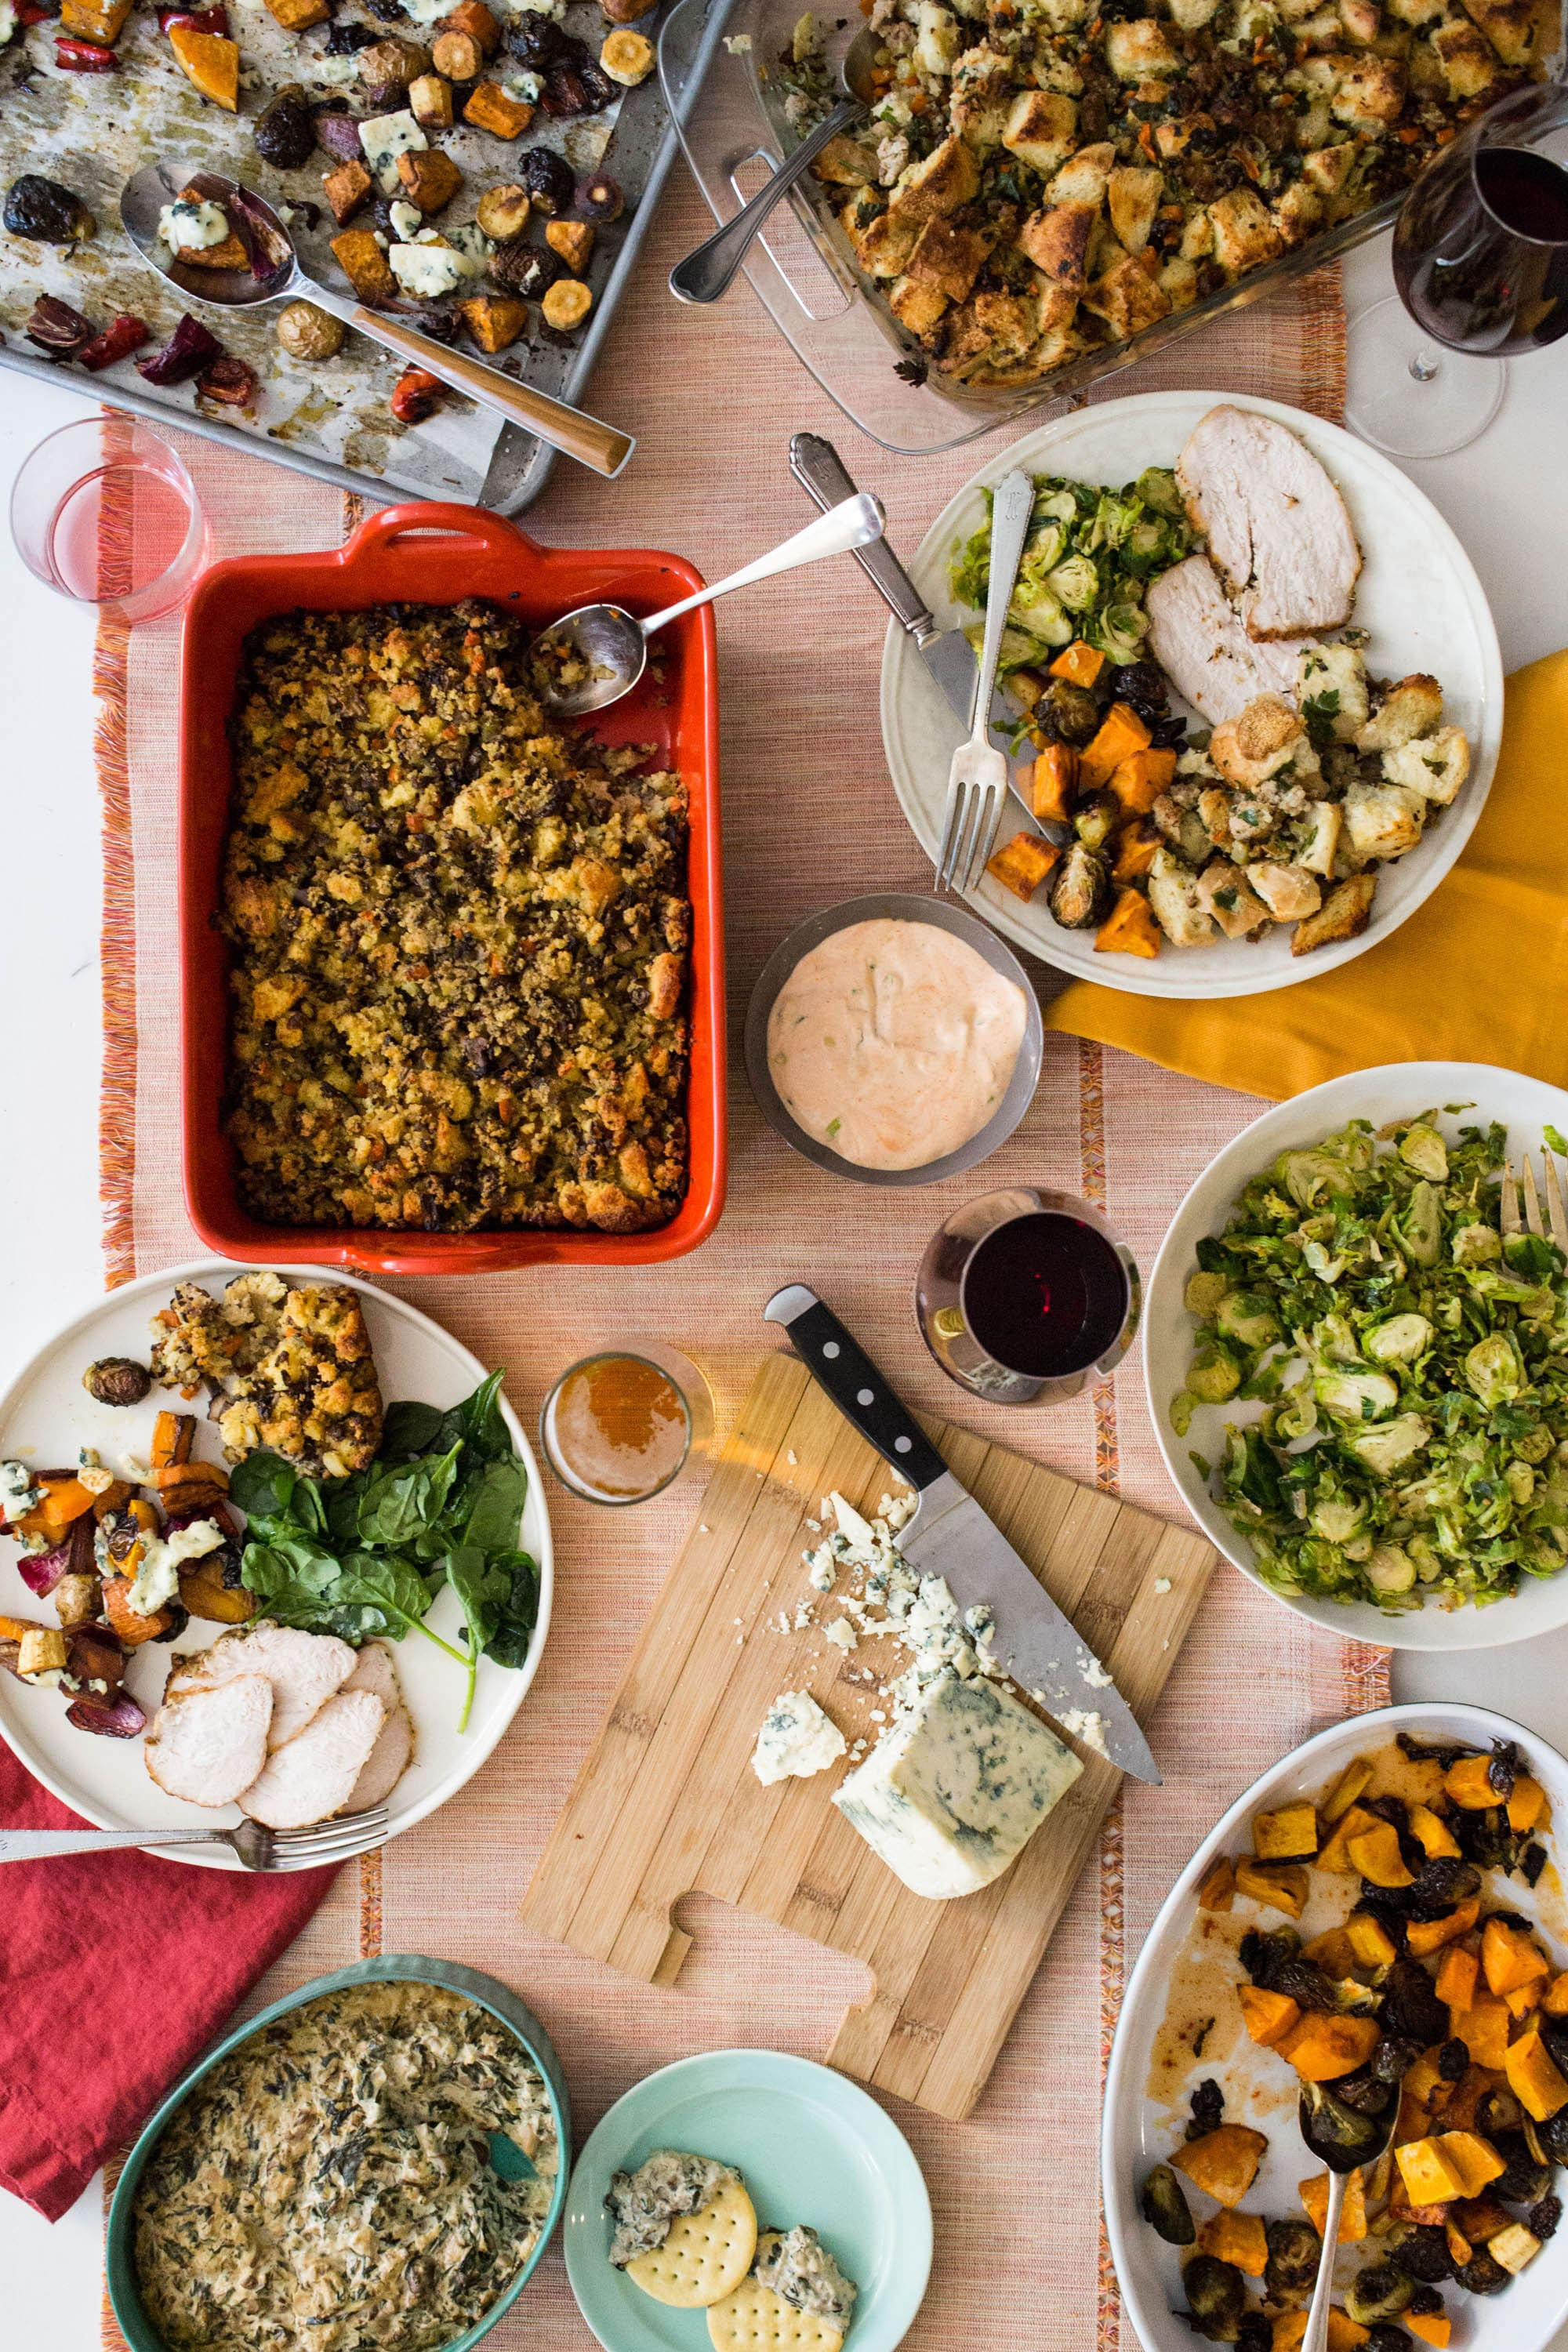 7 Thanksgiving Tips: How to Make Your Thanksgiving Easier. Here are the tips I fall back on year after year, for Thanksgiving and other holiday gatherings.